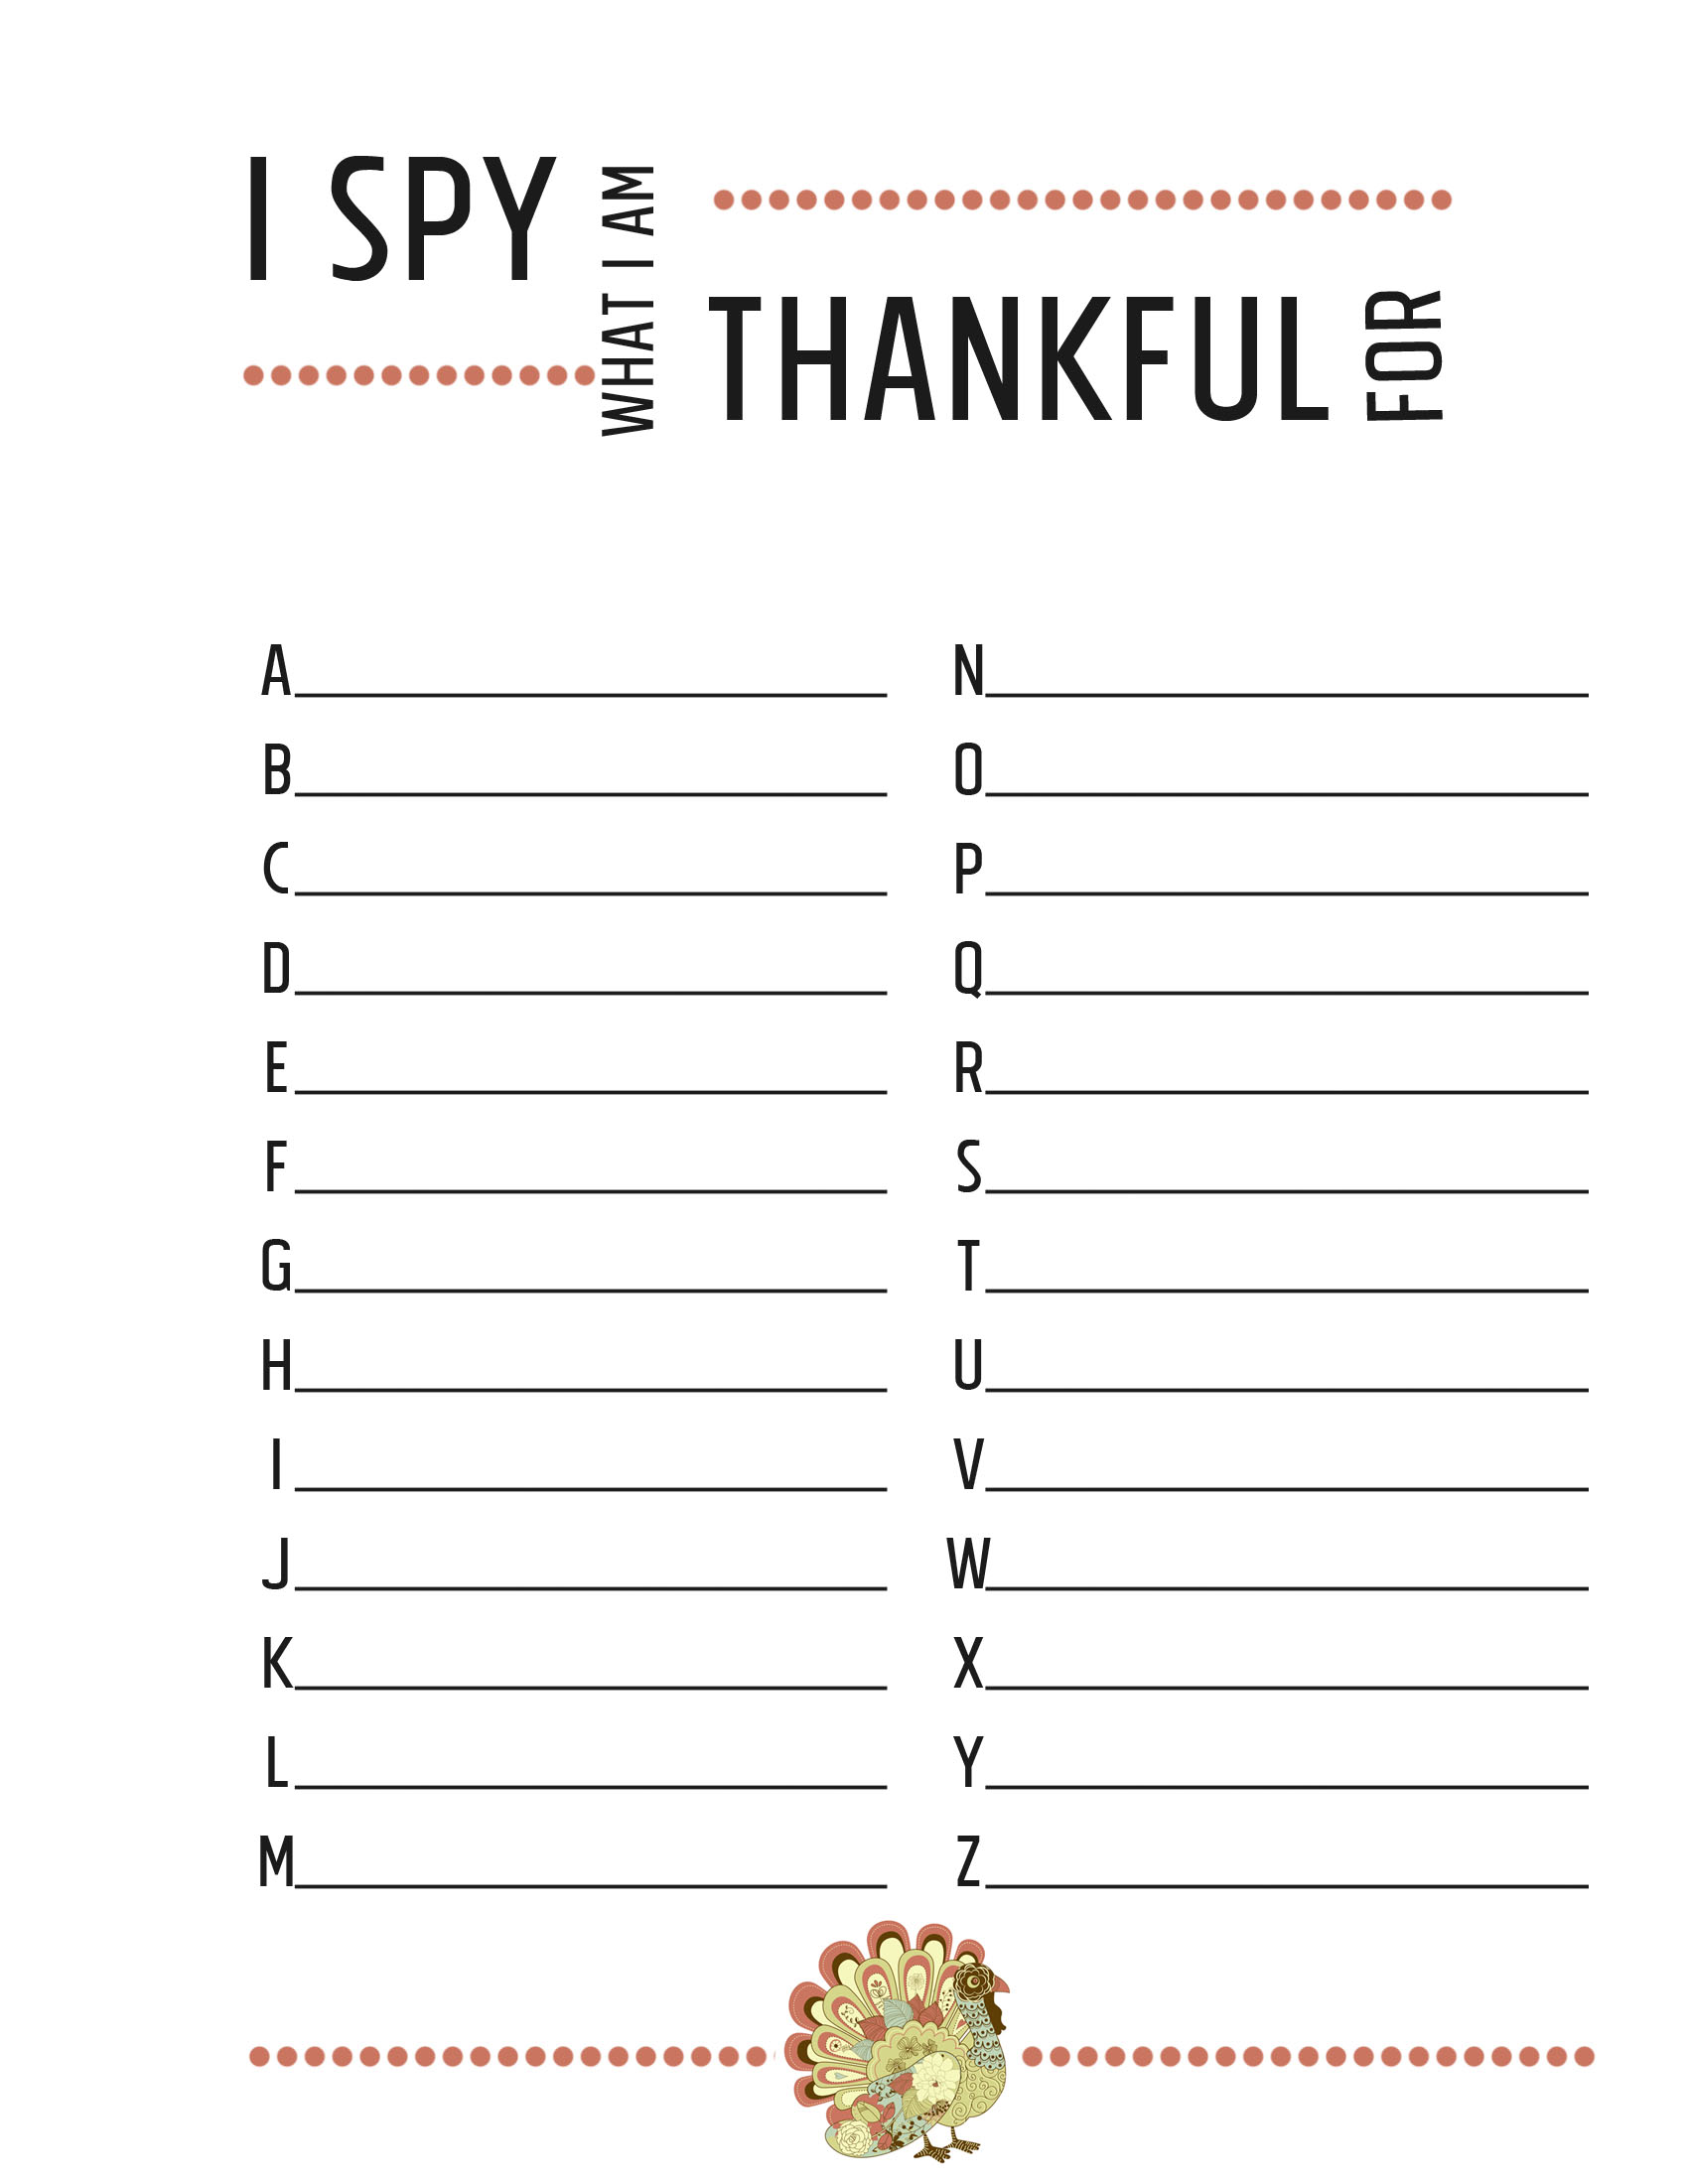 worksheet Thanksgiving Worksheets Free thanksgiving worksheets free printables jessicalynette com worksheets